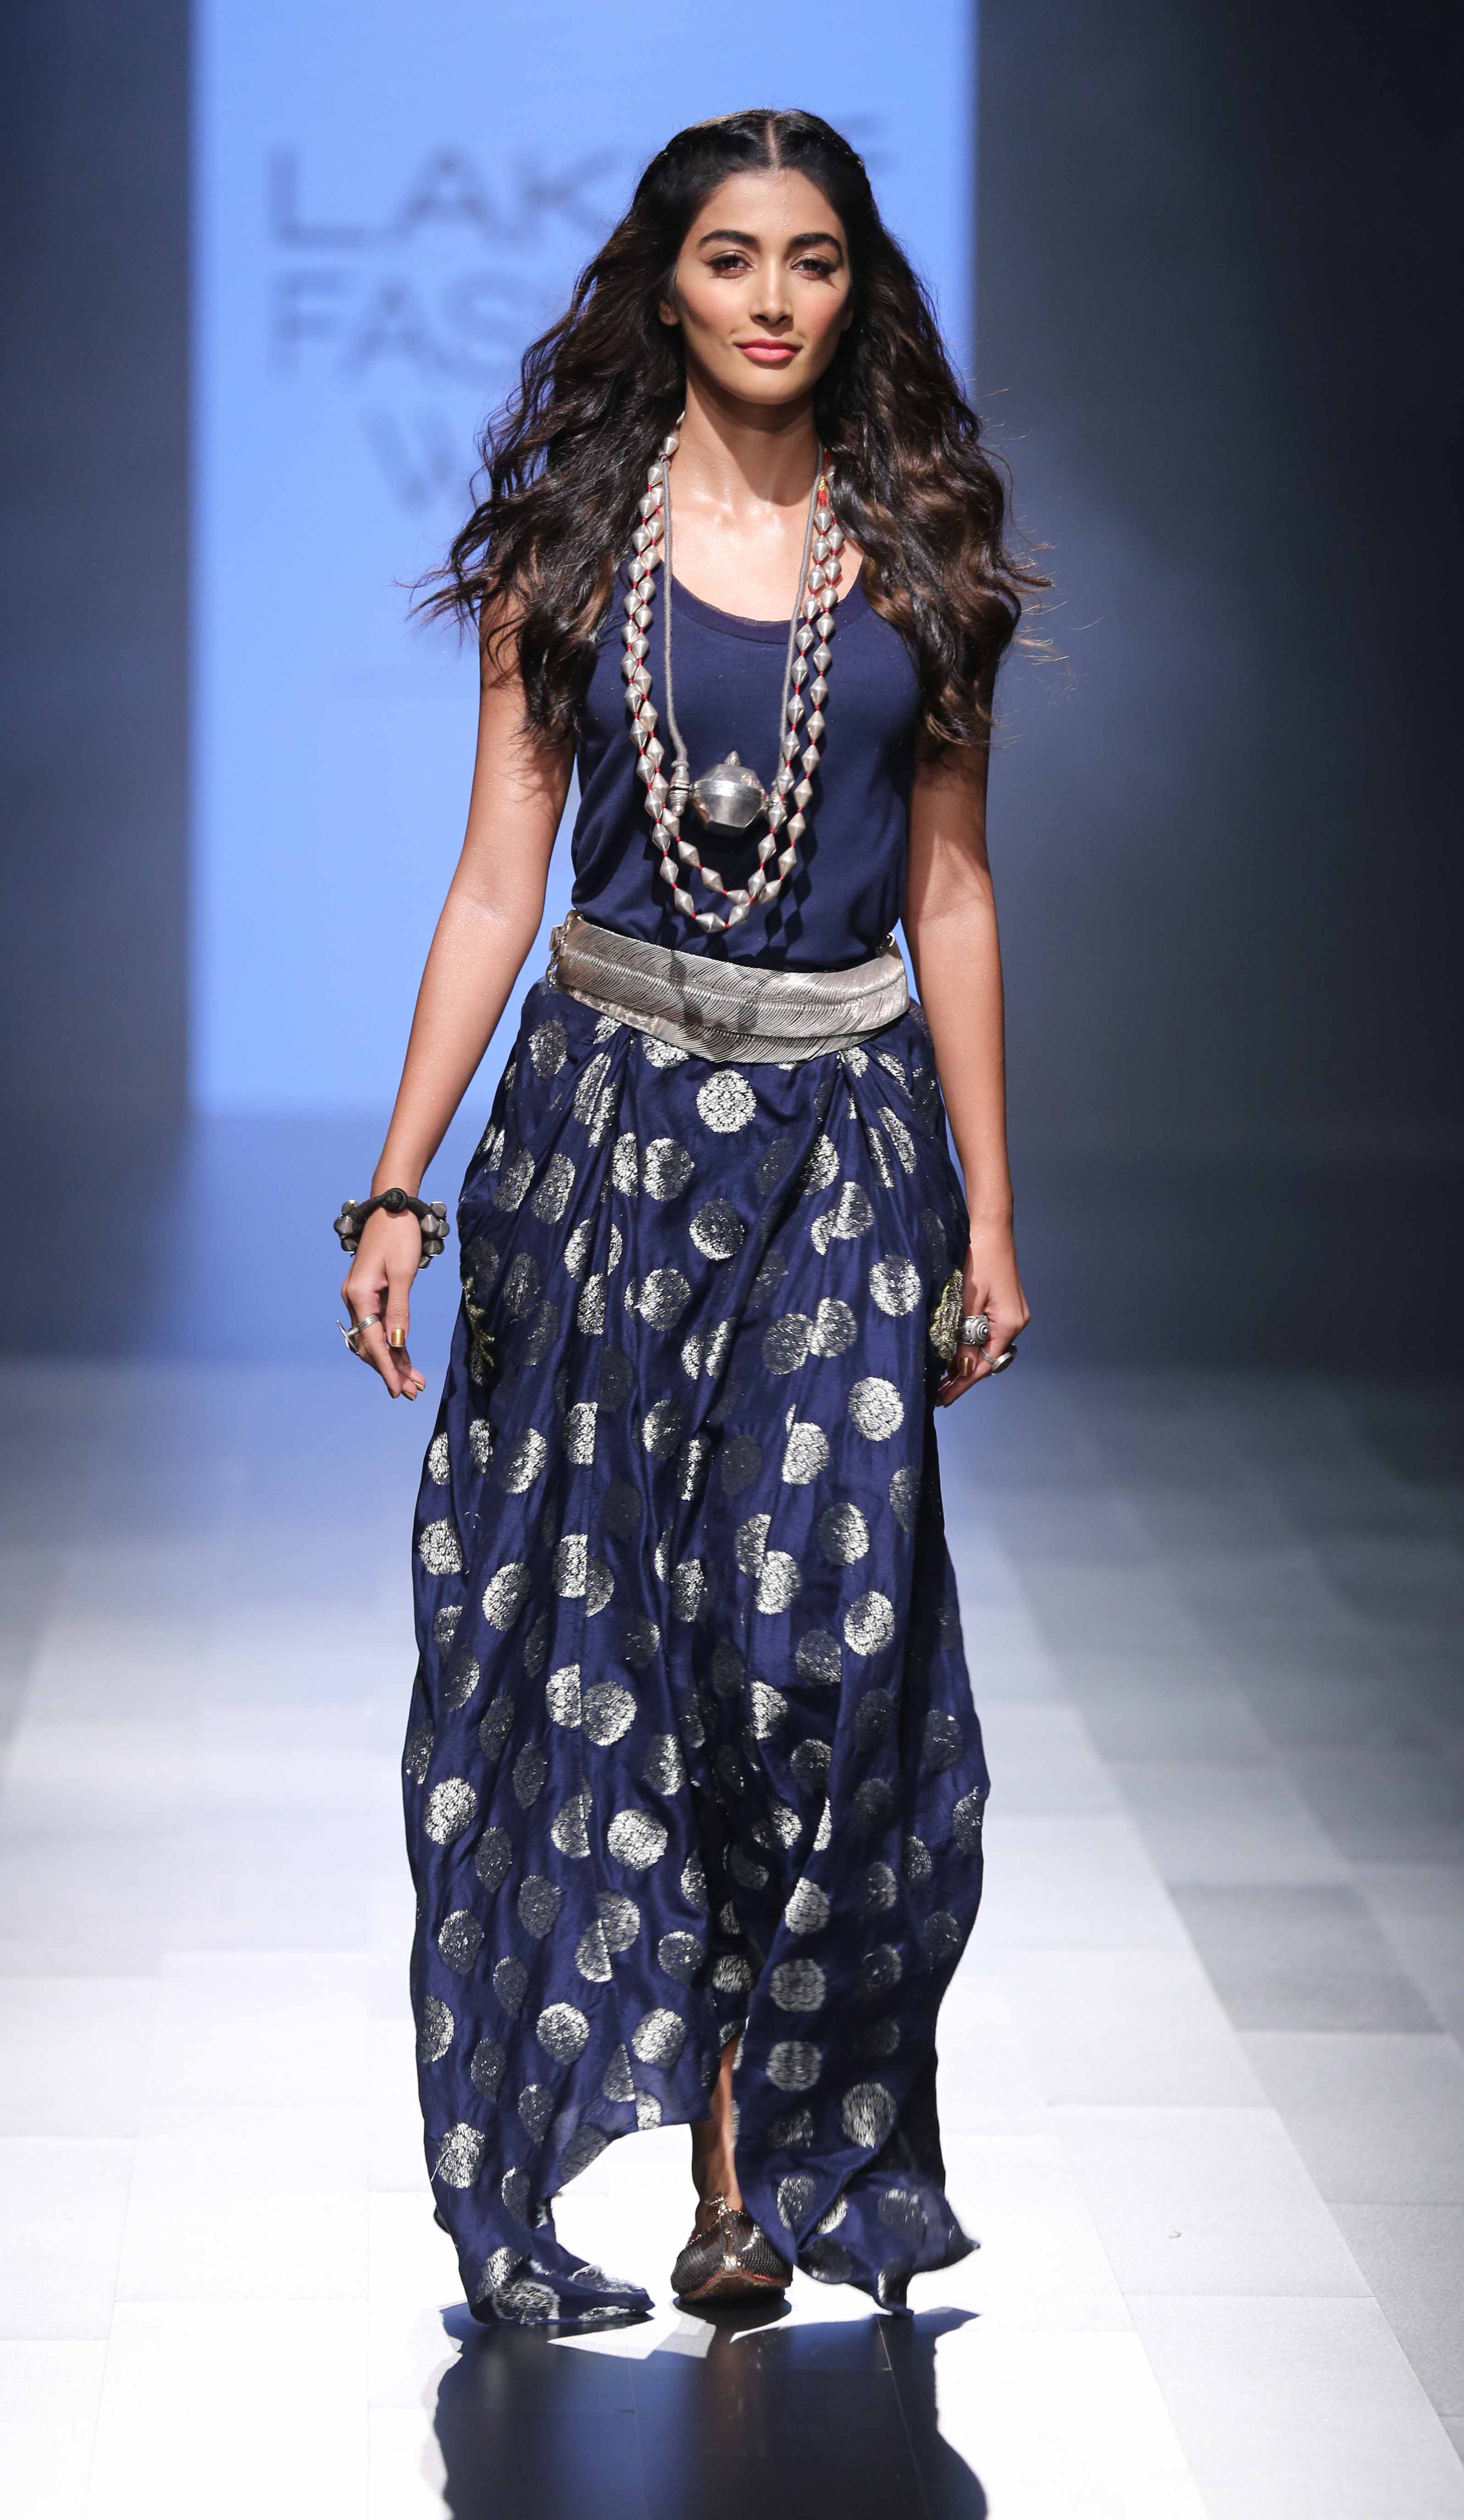 Pooja Hegde for Amoh by Jade - Lakmé Fashion Week Winter-Festive 2016